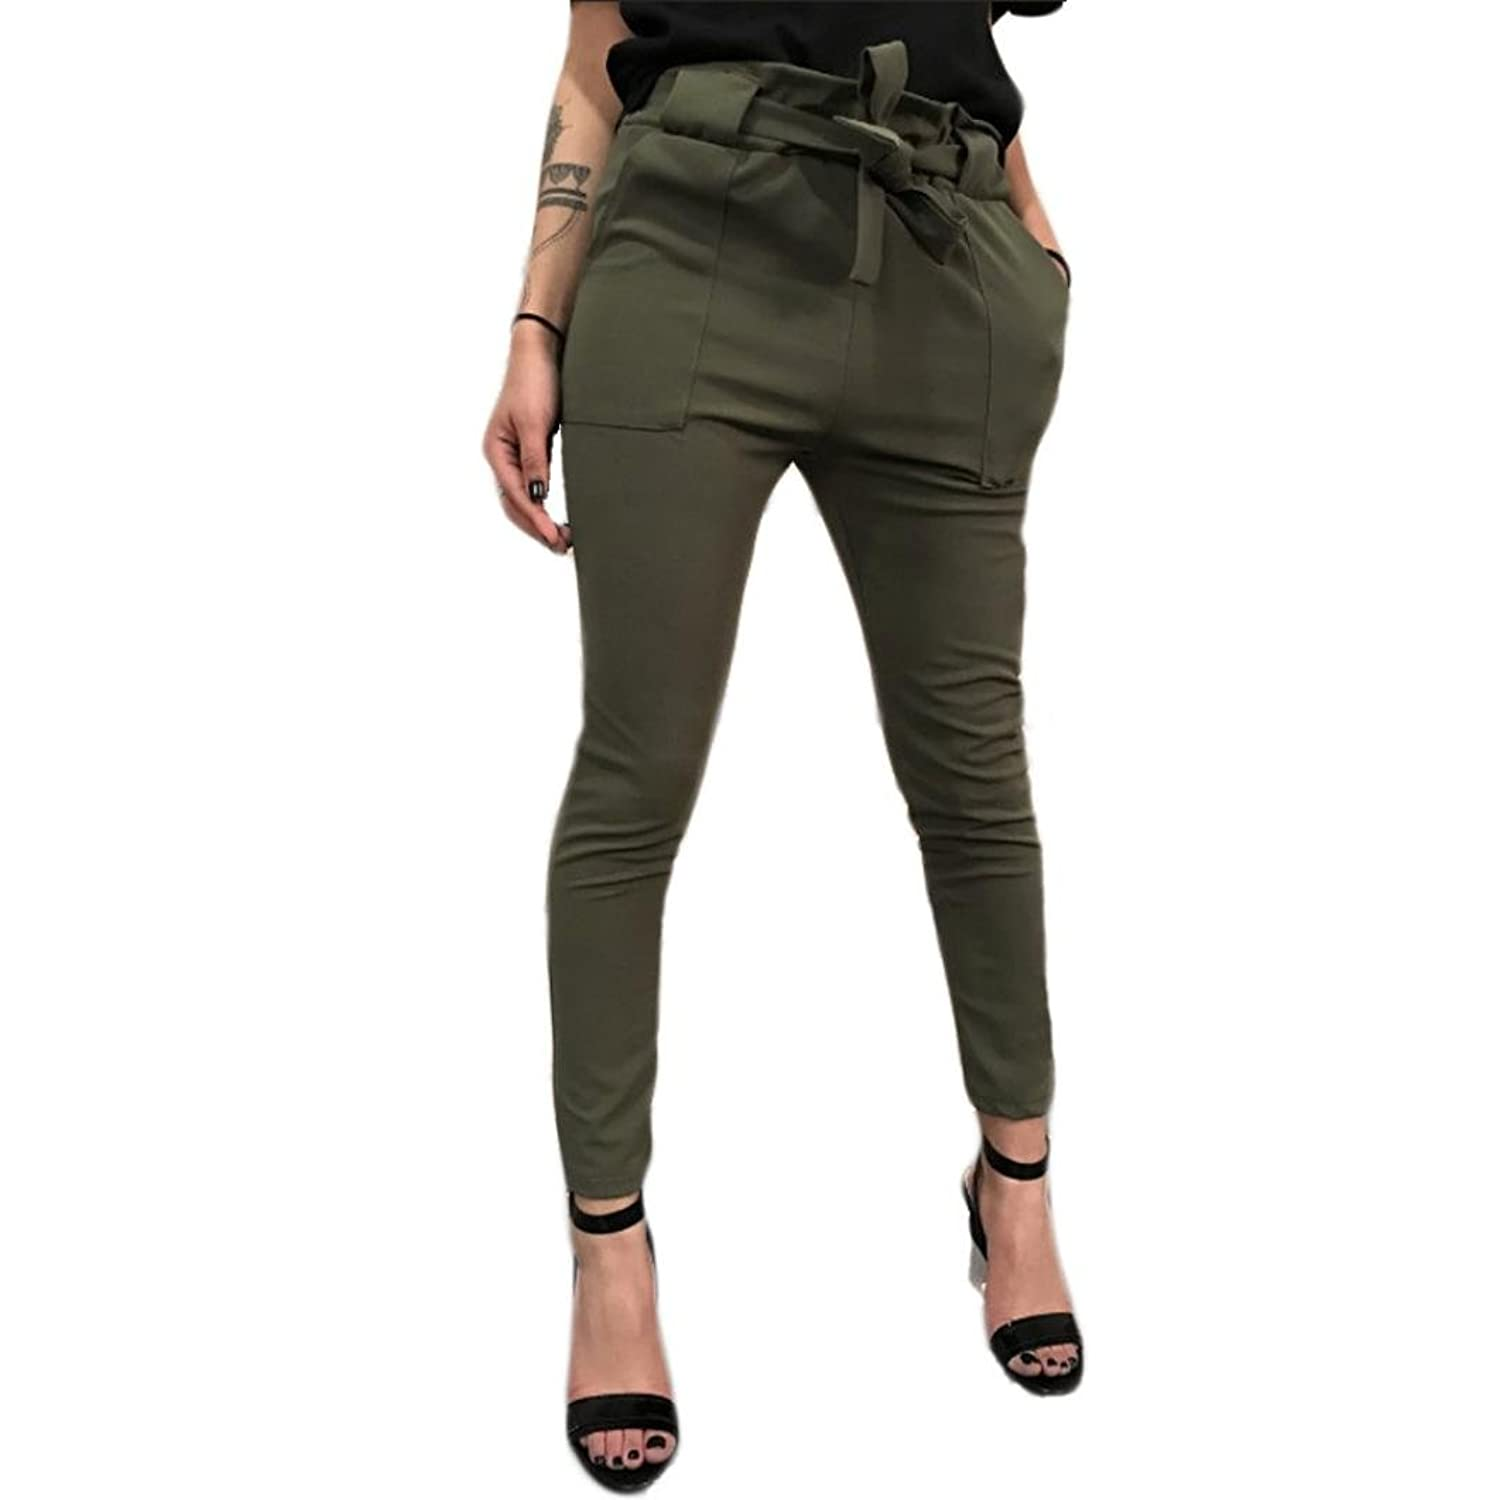 Top 10 Wholesale Best Place To Buy Womens Khaki Pants Chinabrandscom